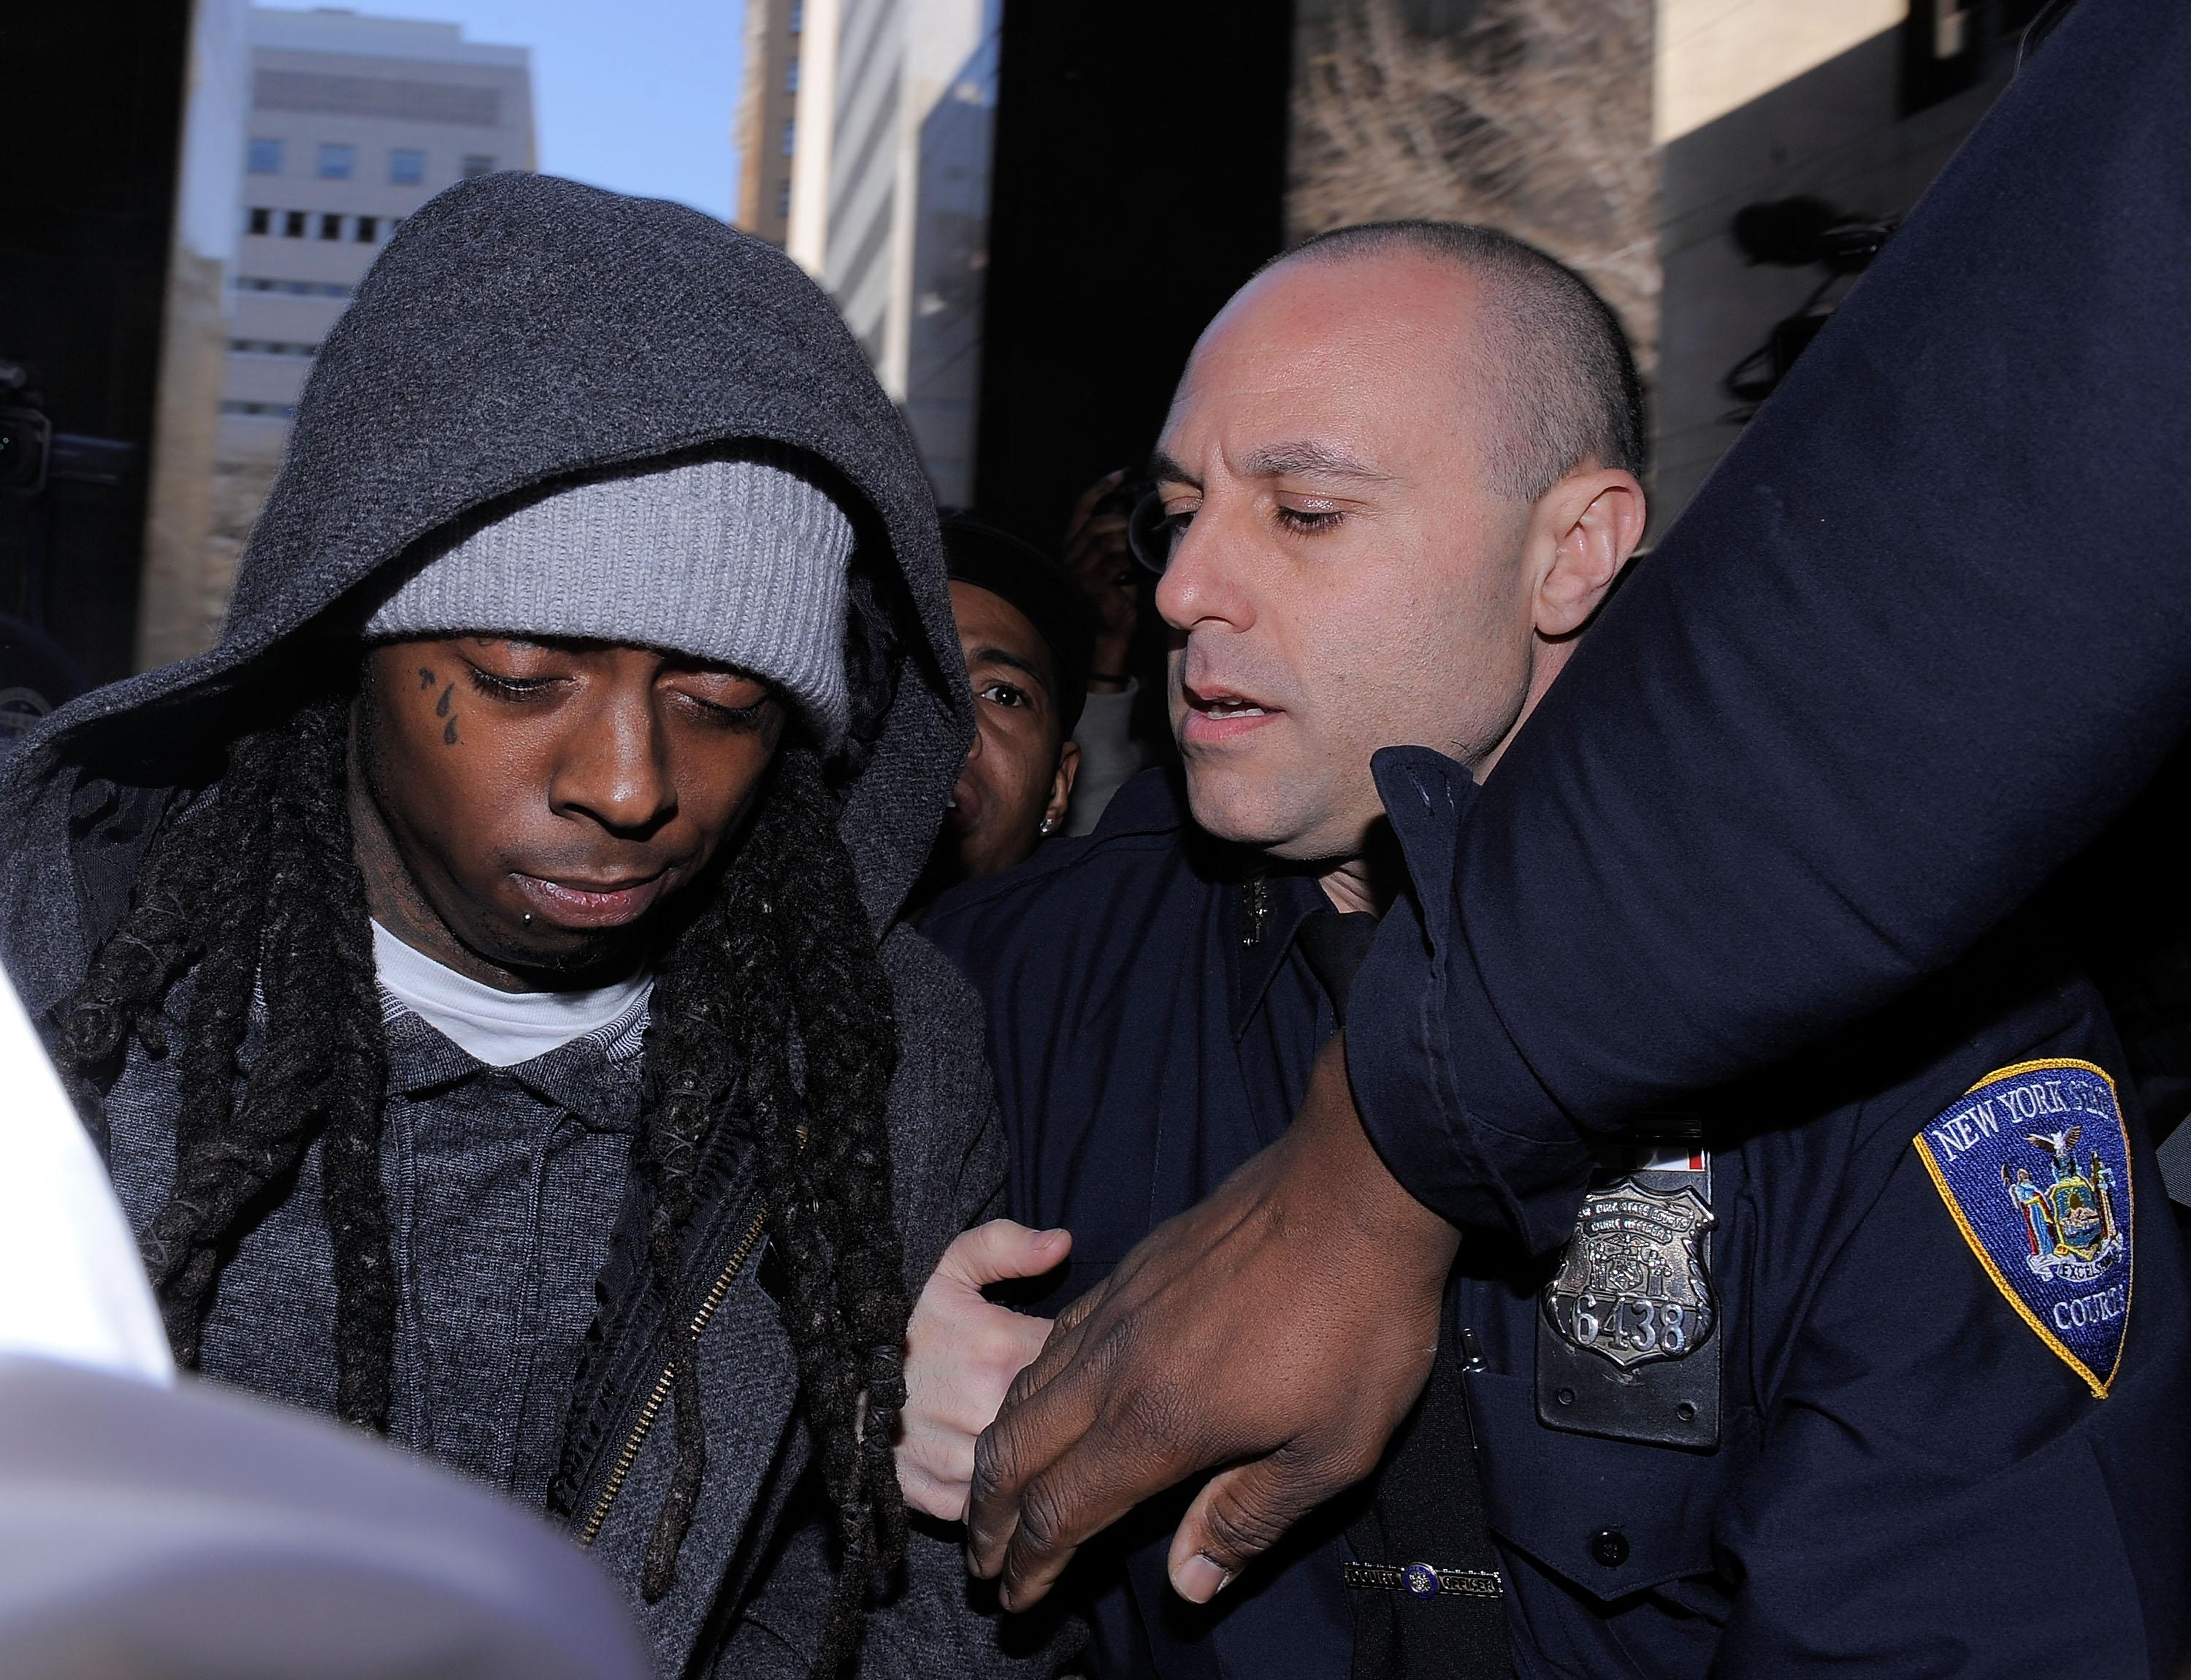 Lil Wayne Arrives In Court For Weapon Charges